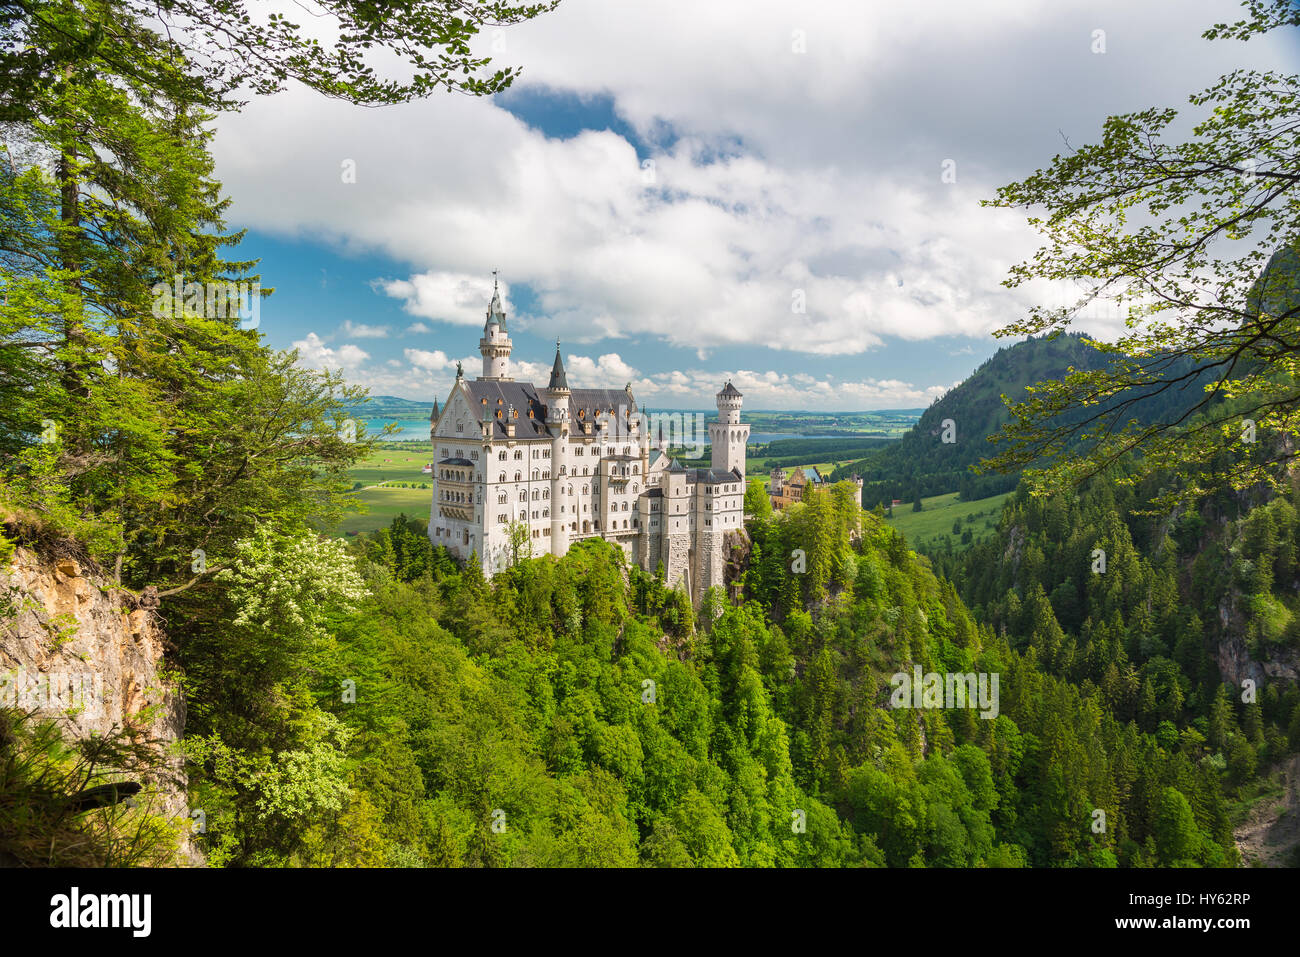 Picturesque nature landscape with Neuschwanstein Castle. Bavaria, Germany - Stock Image